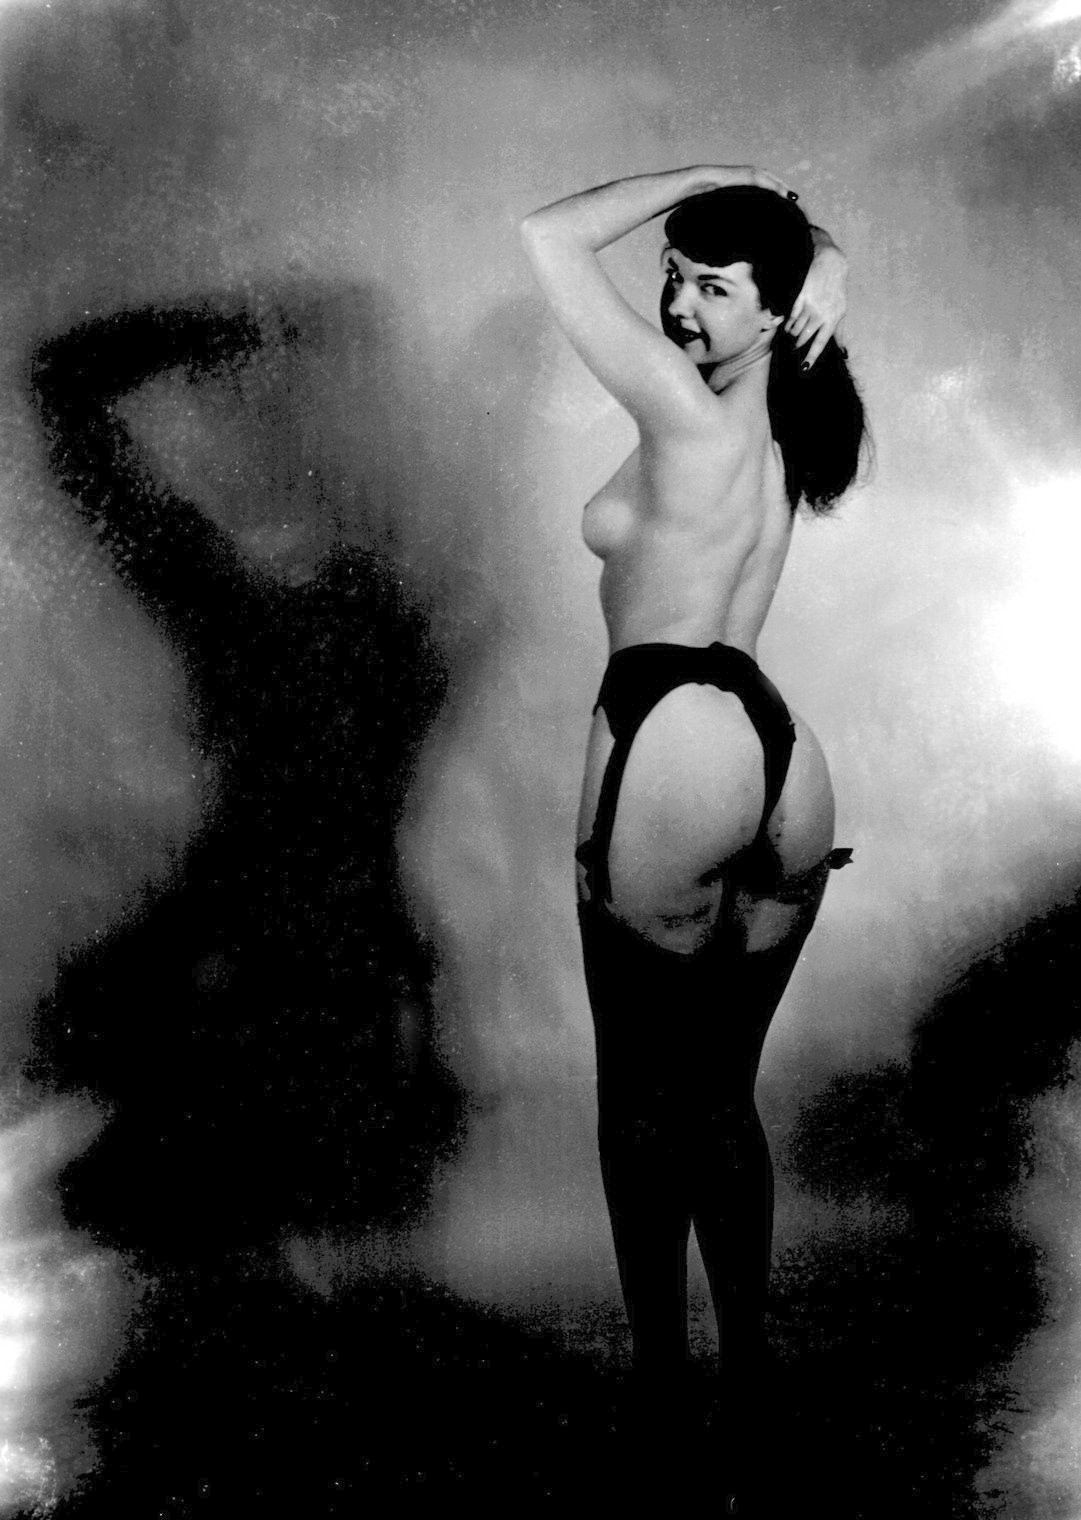 Bettie page's lost years revealed in treasure trove of unseen letters and photos